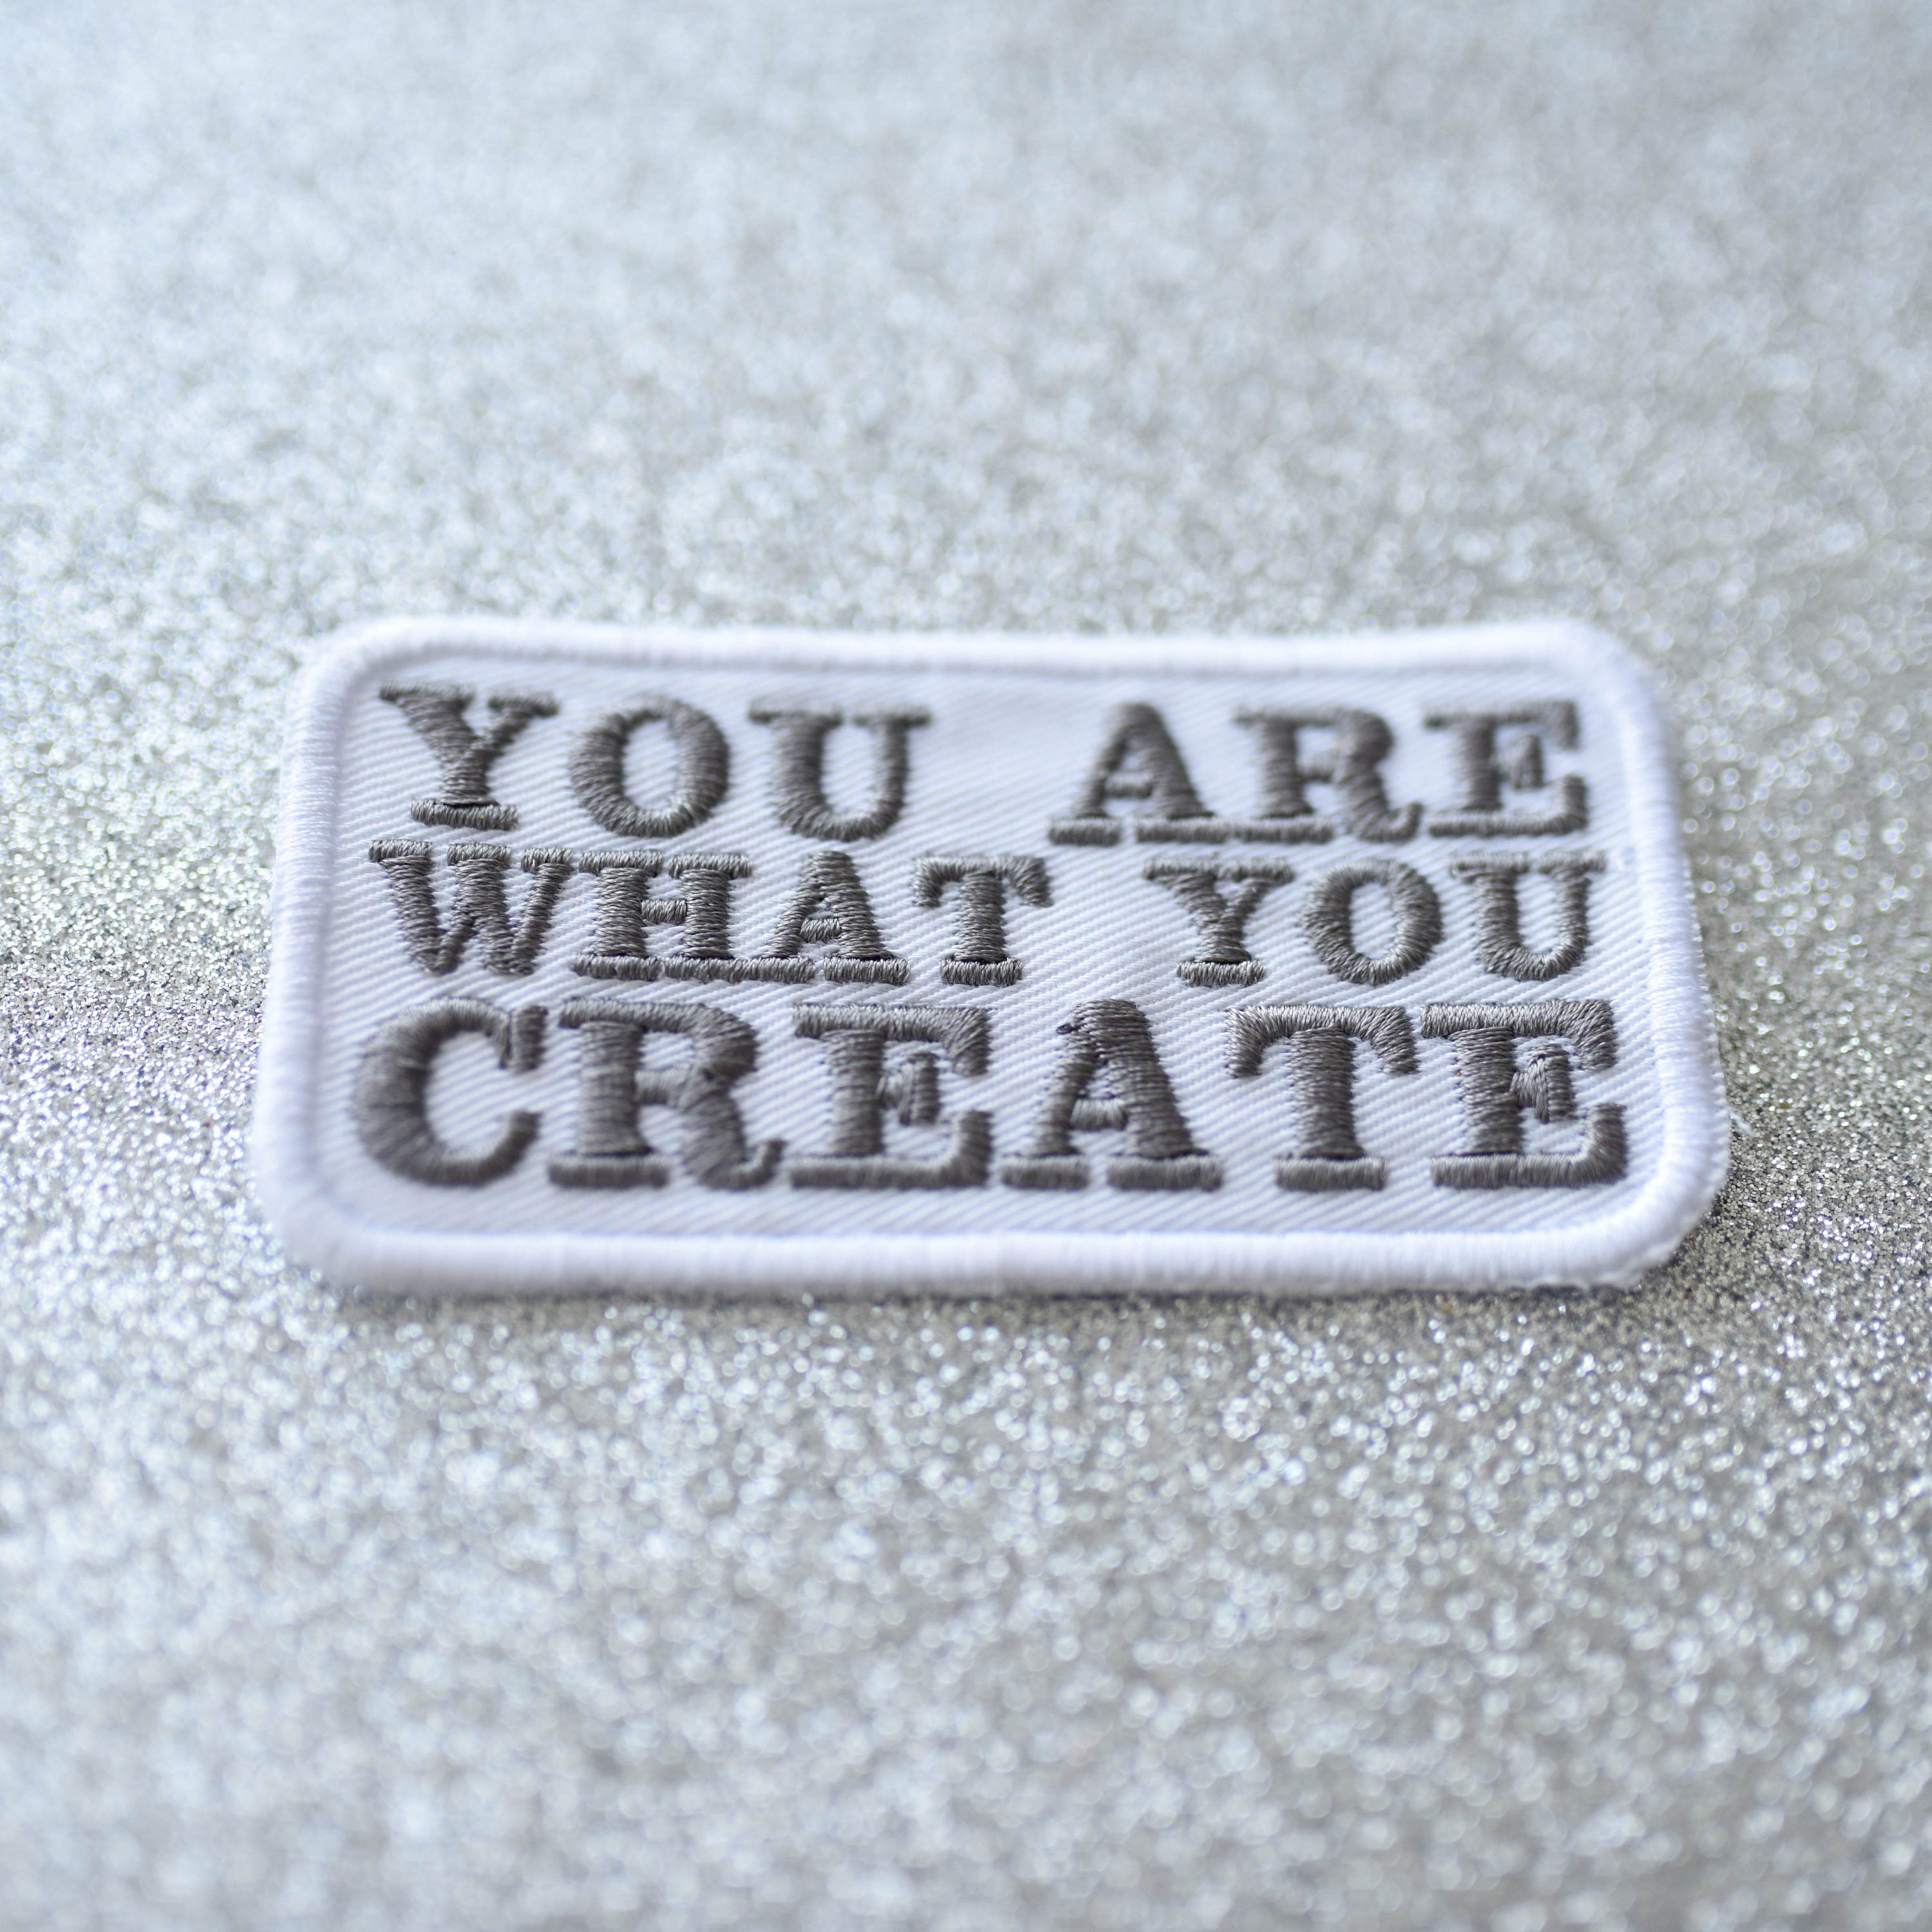 You Are What You Create Iron On Embroidered Patch Badge Patch For Jacket Embroide Iron On Embroidered Patches Embroidery Patches Embroidery Machine Reviews